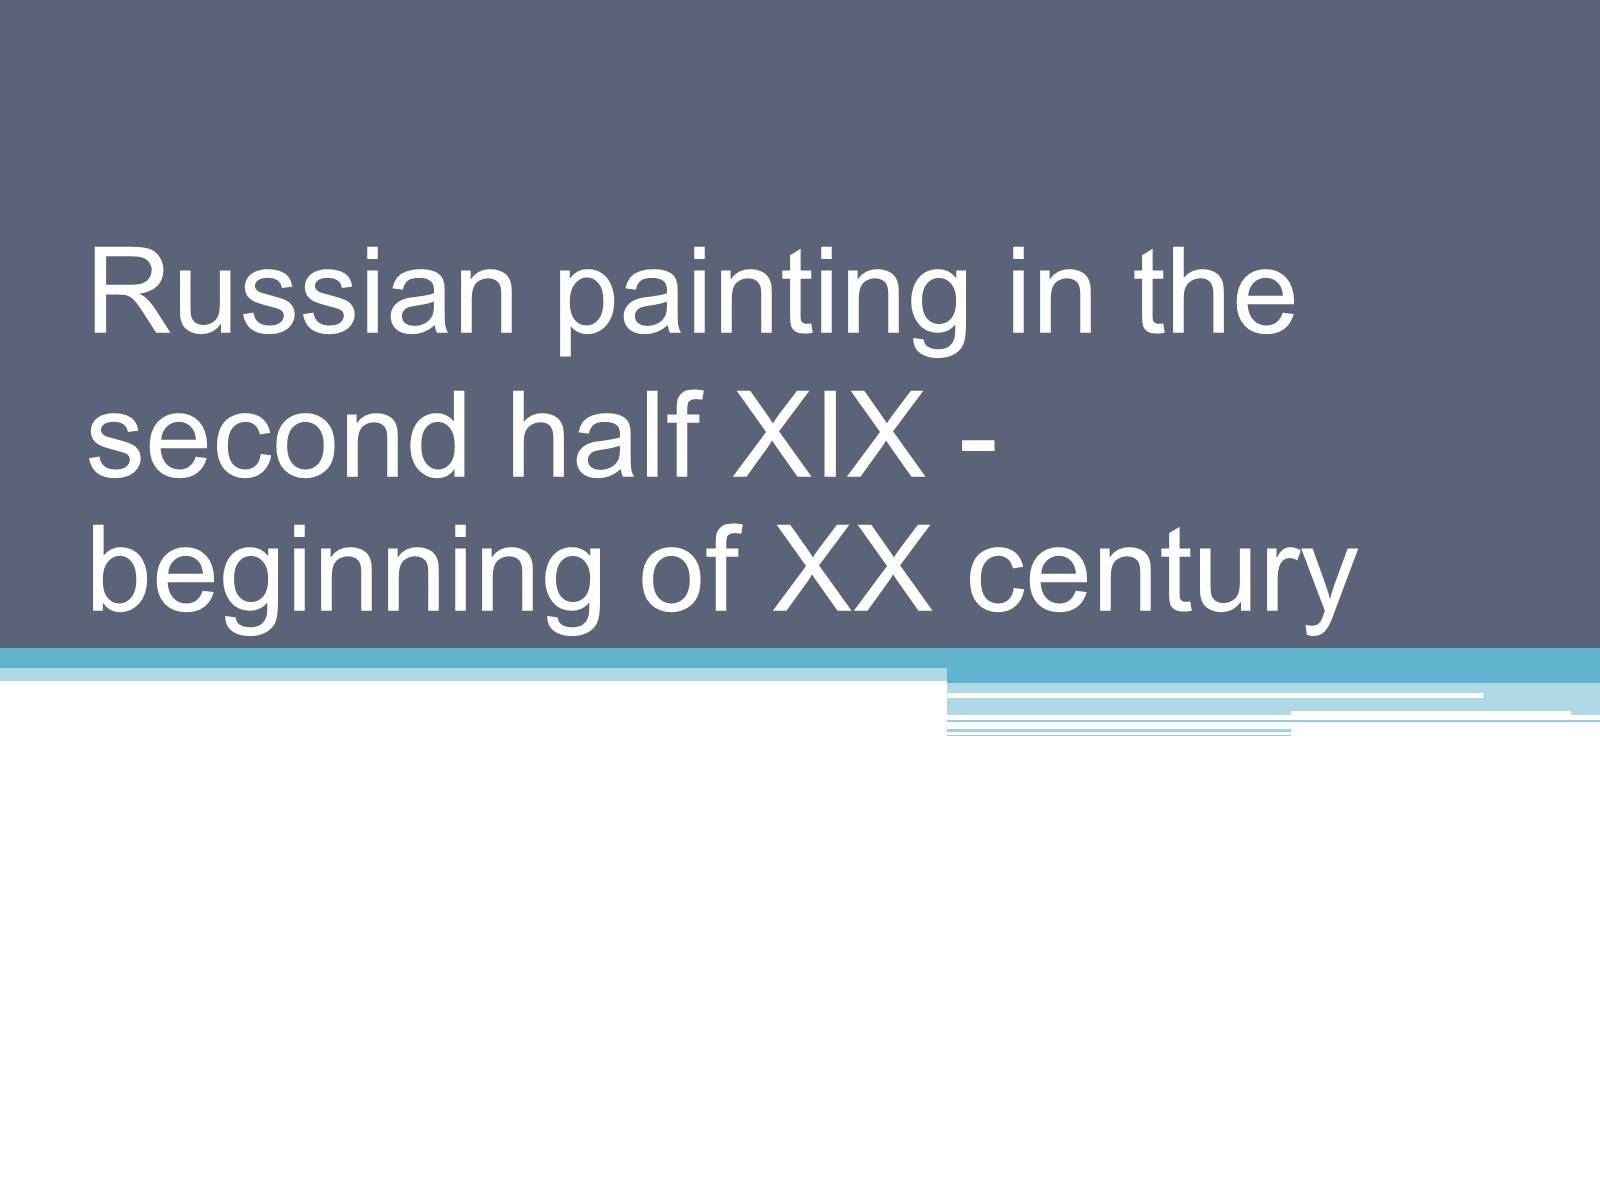 Презентація на тему «Russian painting in the second half XIX - beginning of XX century» - Слайд #1